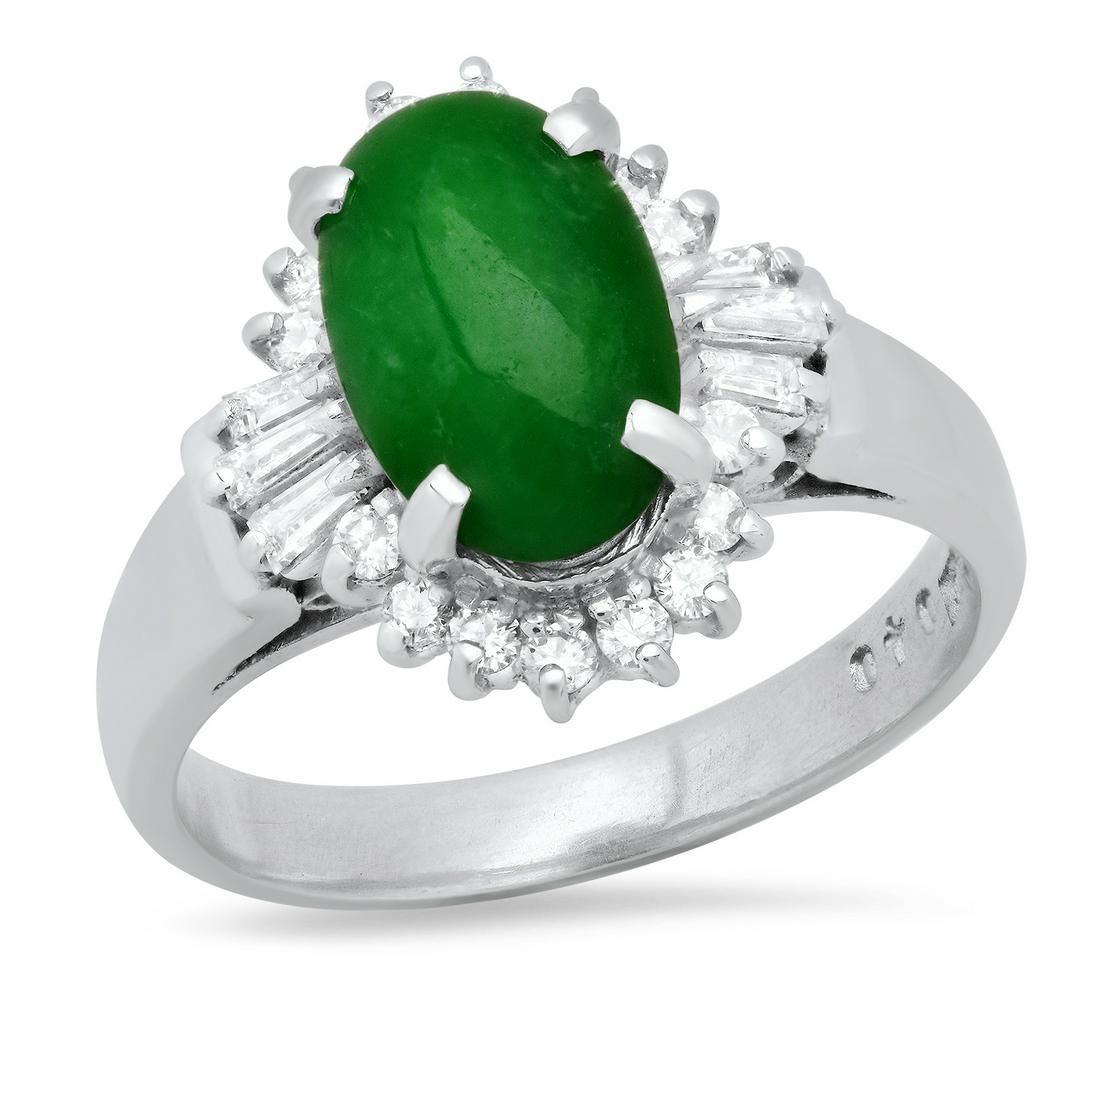 Platinum Ladies Ring with 2.5ct Jade(GIA certified) and